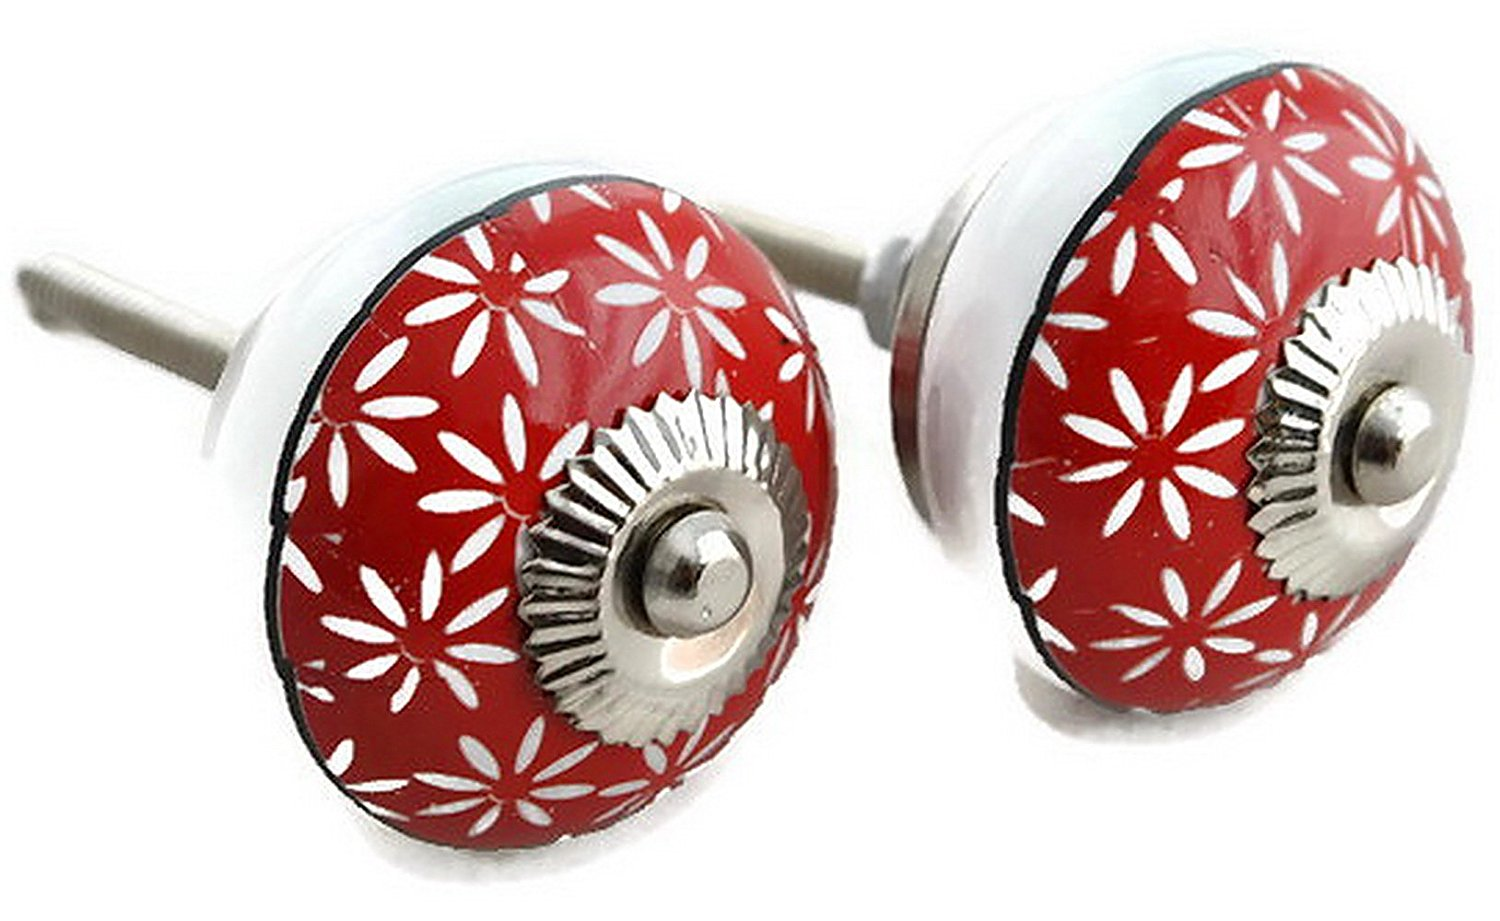 StarZebra- Handmade Hand-painted Ceramic Knobs & Pulls - set of 2 Decorative Handles for Cabinets/Dressers/Drawers - Home Decor - Red Wine